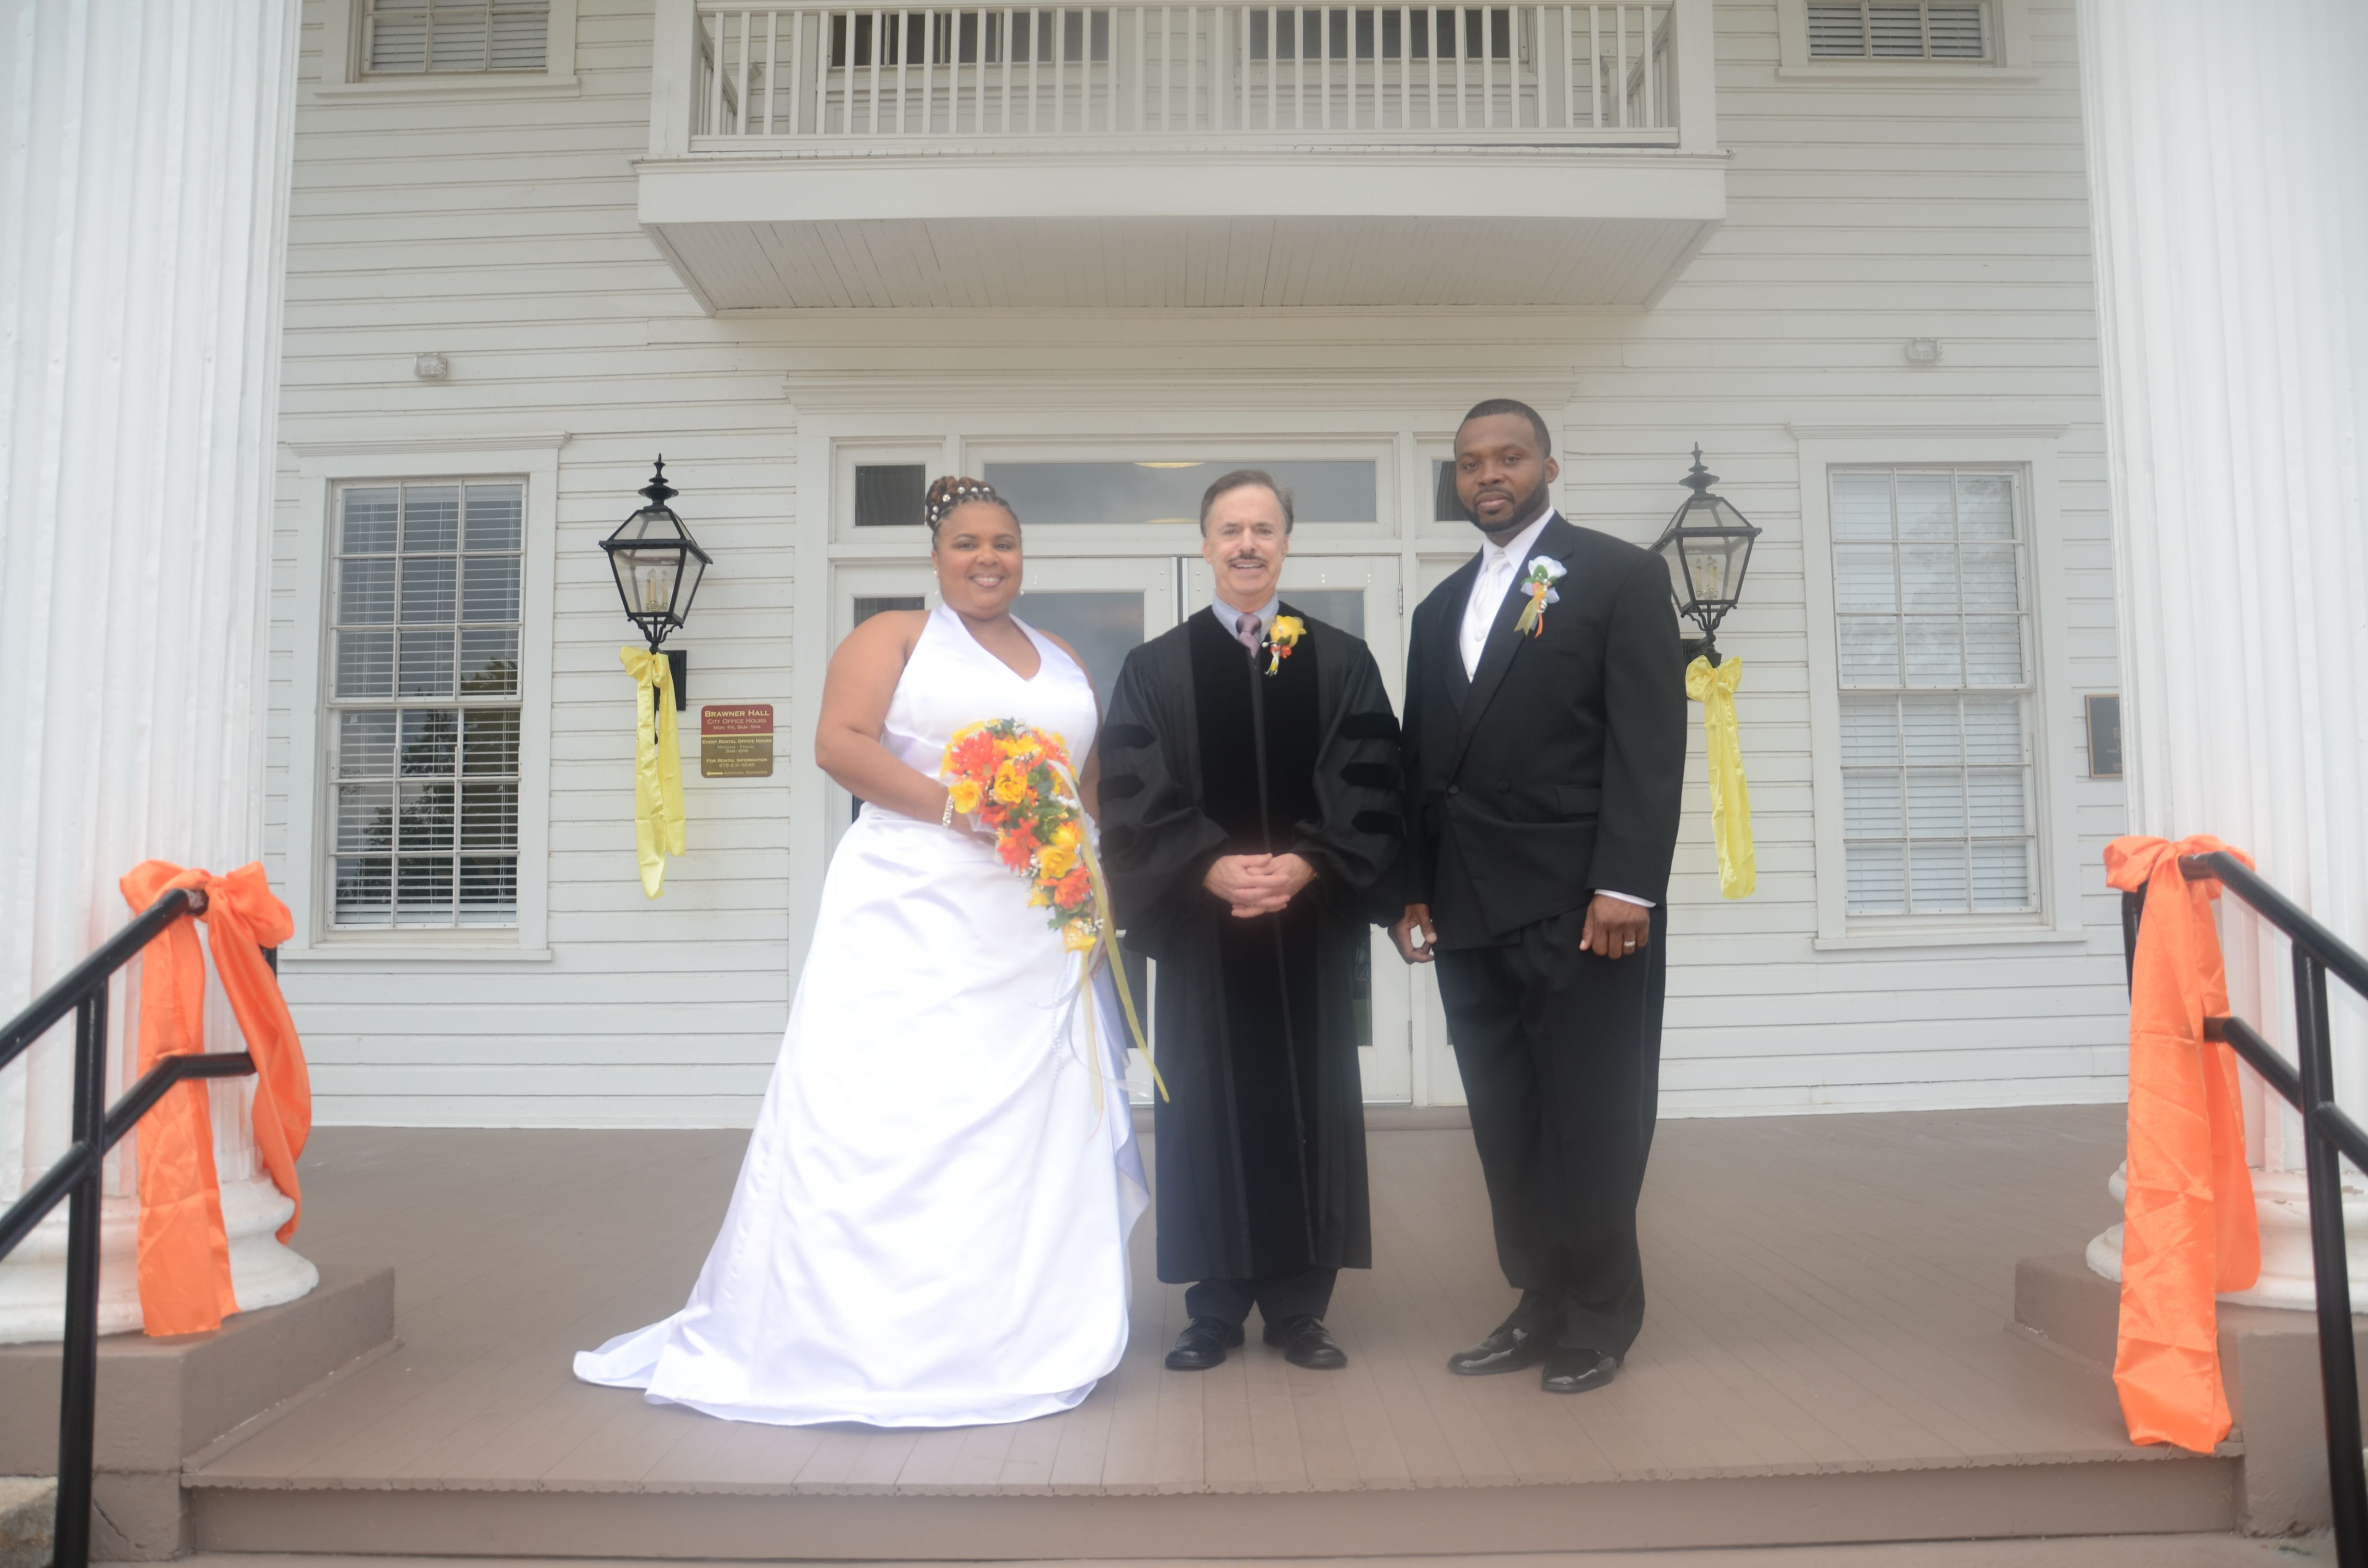 Atlanta Wedding Ministers Officiants Justice Of Peace Marry Elope Georgia 770 963 7472 Flickr Reverend Wedding Minister Atlanta Wedding Atlanta Wedding Venues